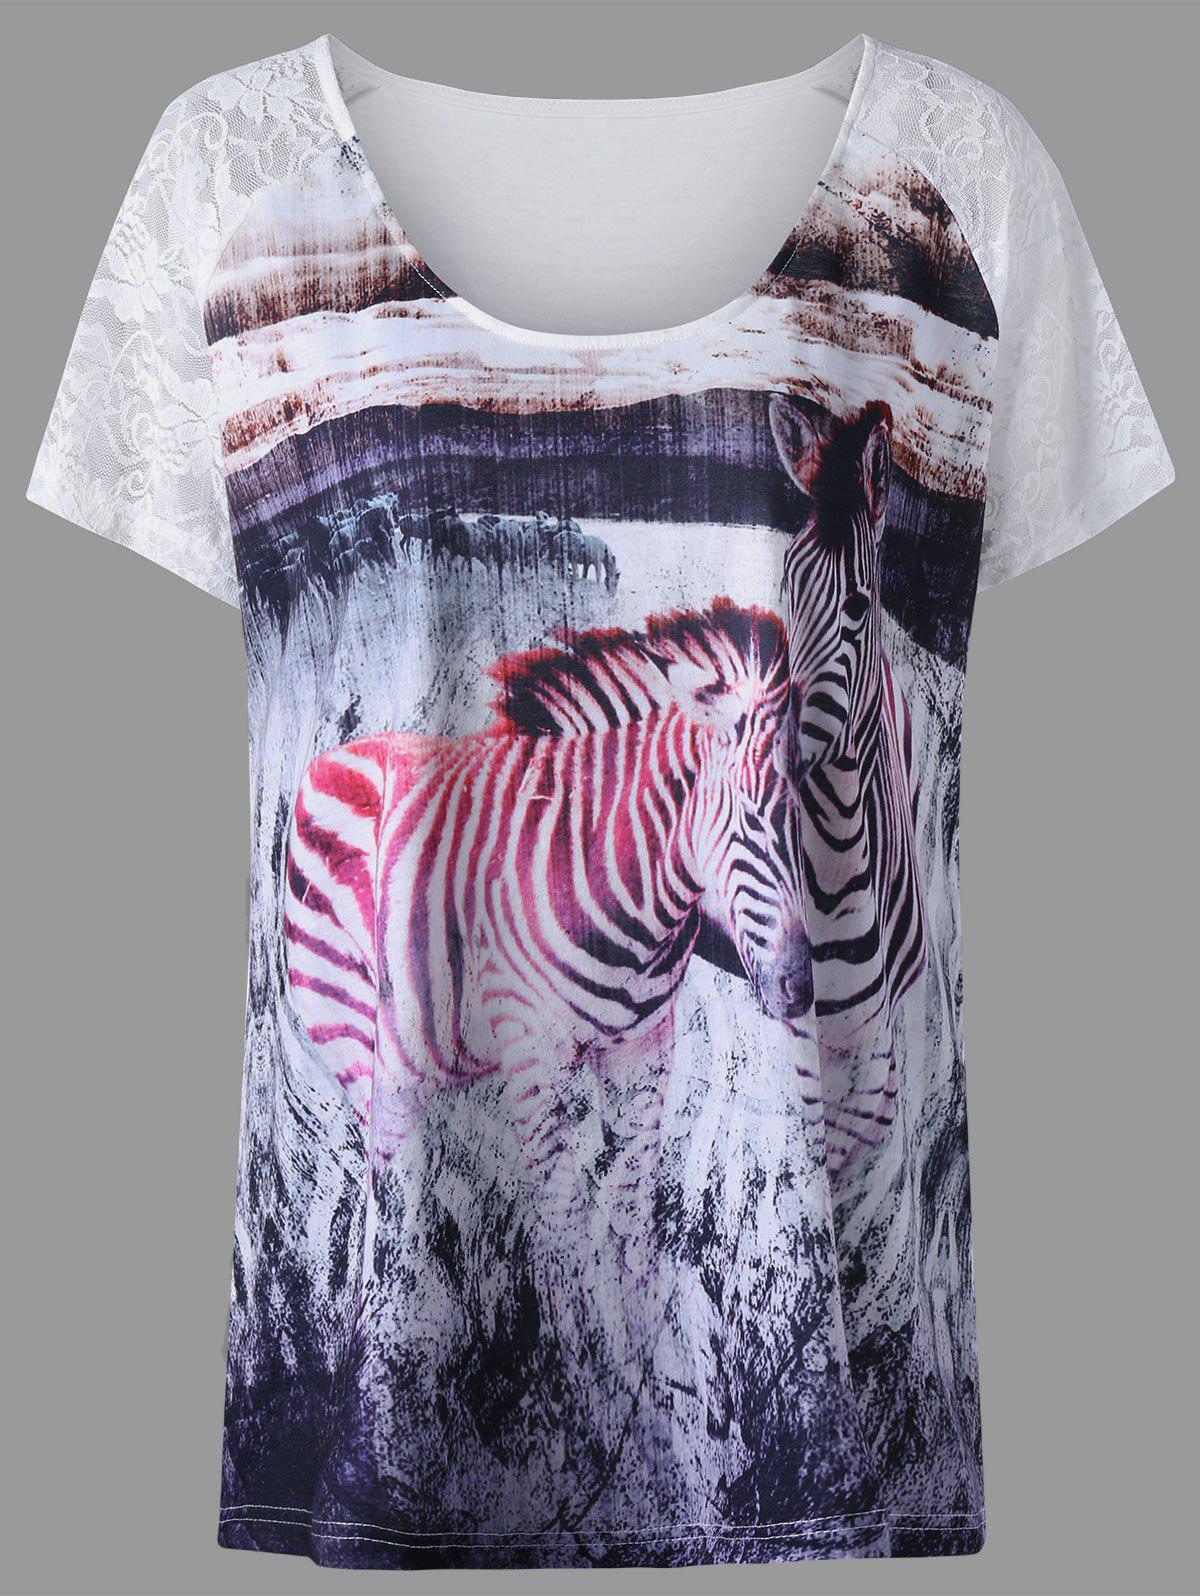 Plus Size Lace Insert Zebra Print T-shirt - COLORMIX XL